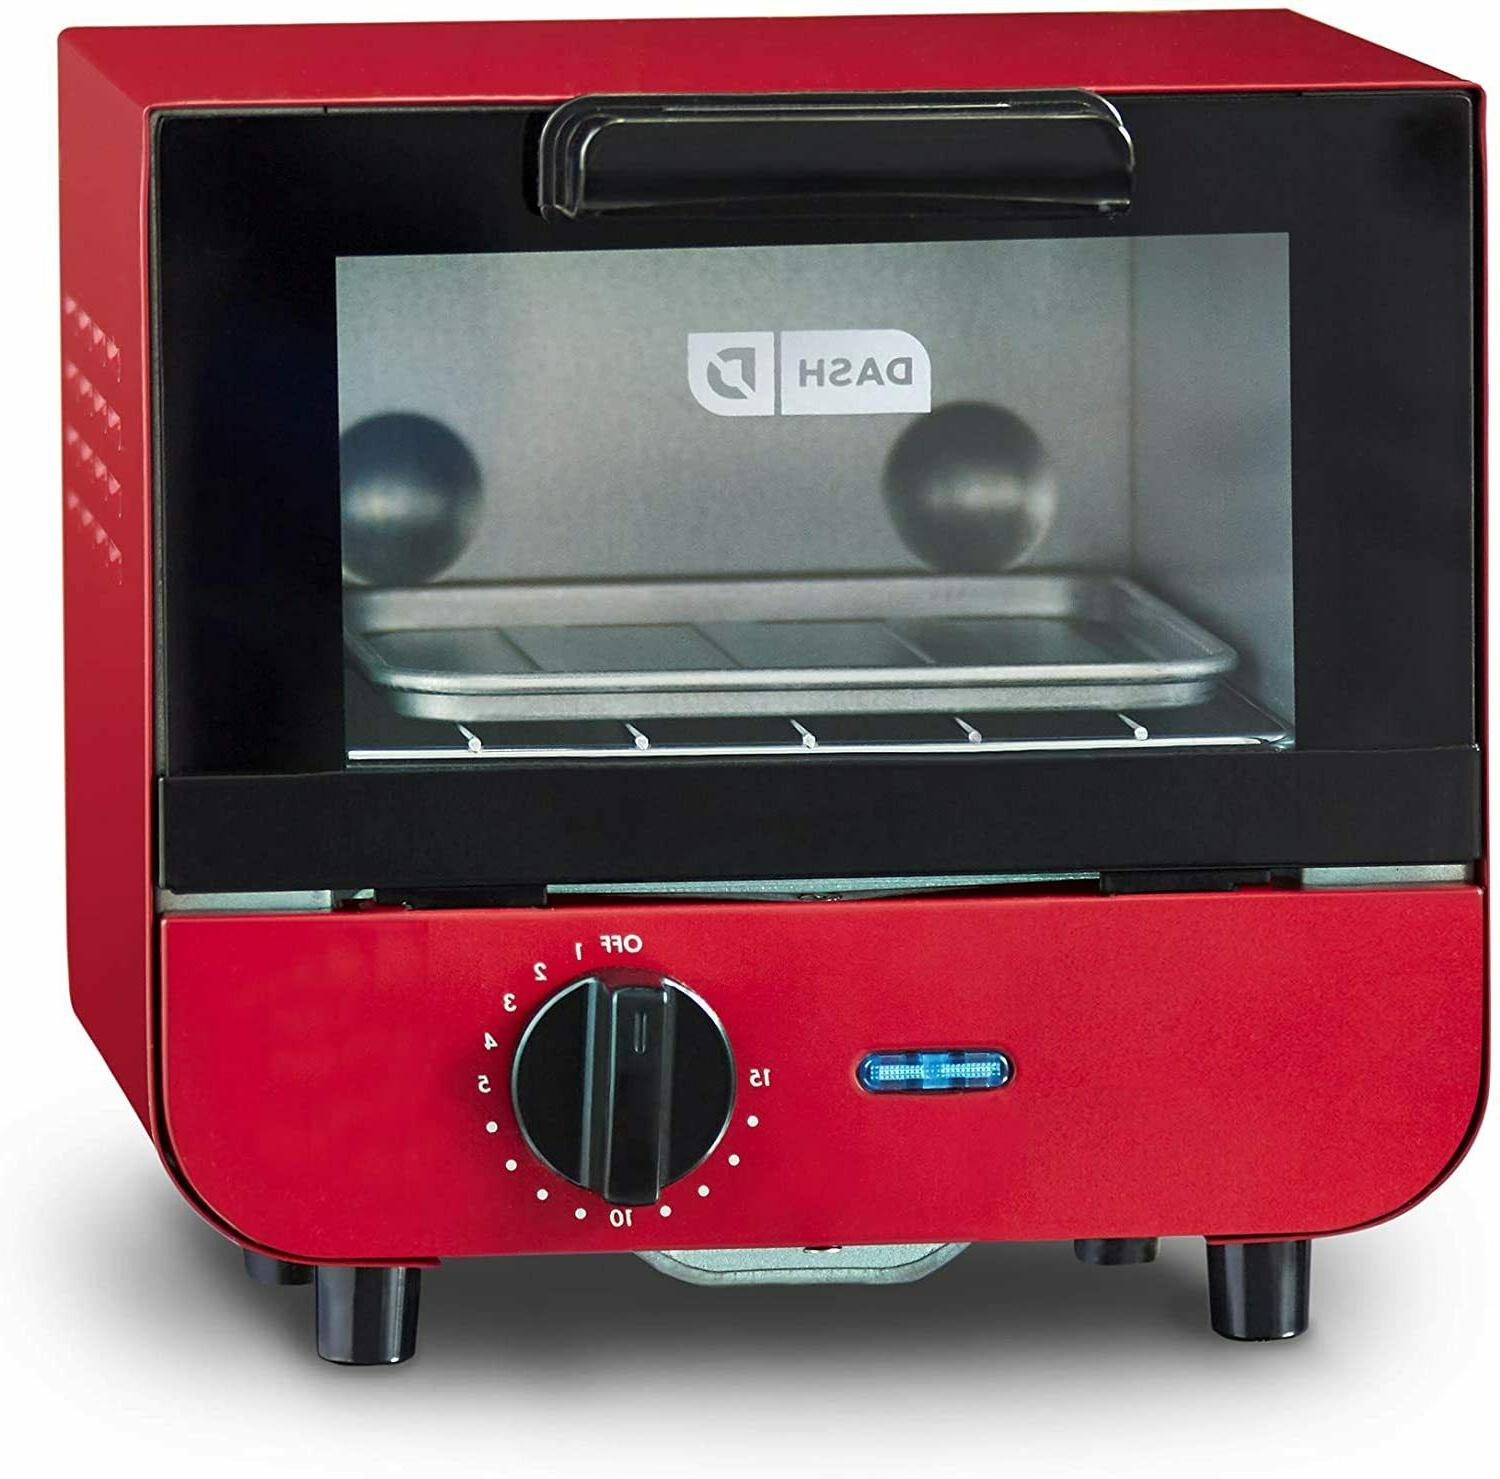 Red Dash Mini Toaster Oven Cooker for Bread with Baking Tray